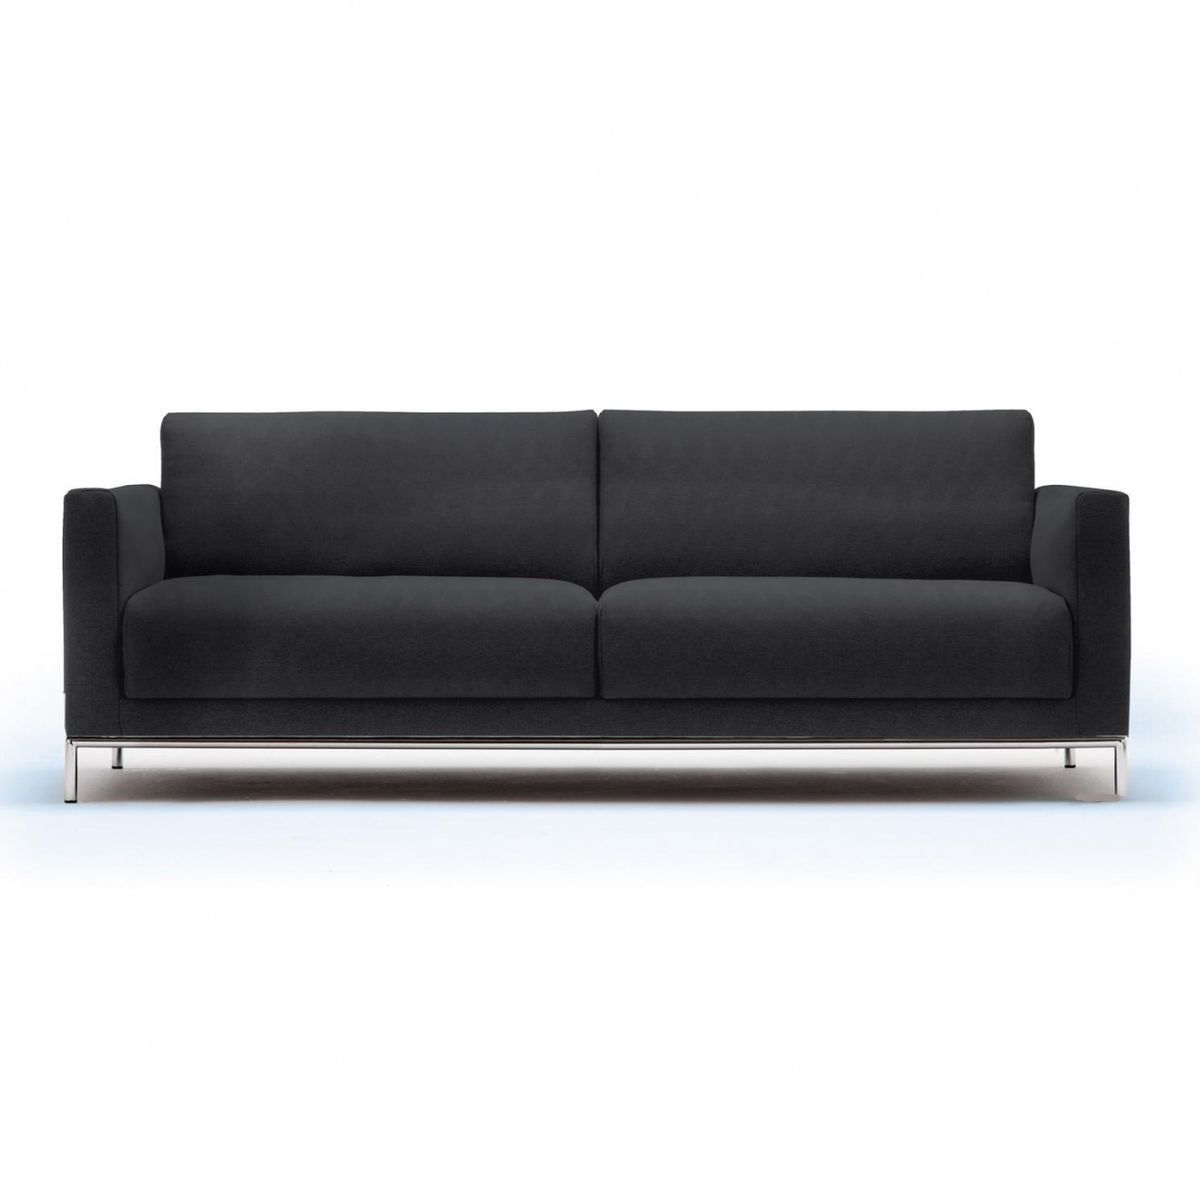 freistil 141 3 seater sofa frame chrome freistil rolf. Black Bedroom Furniture Sets. Home Design Ideas